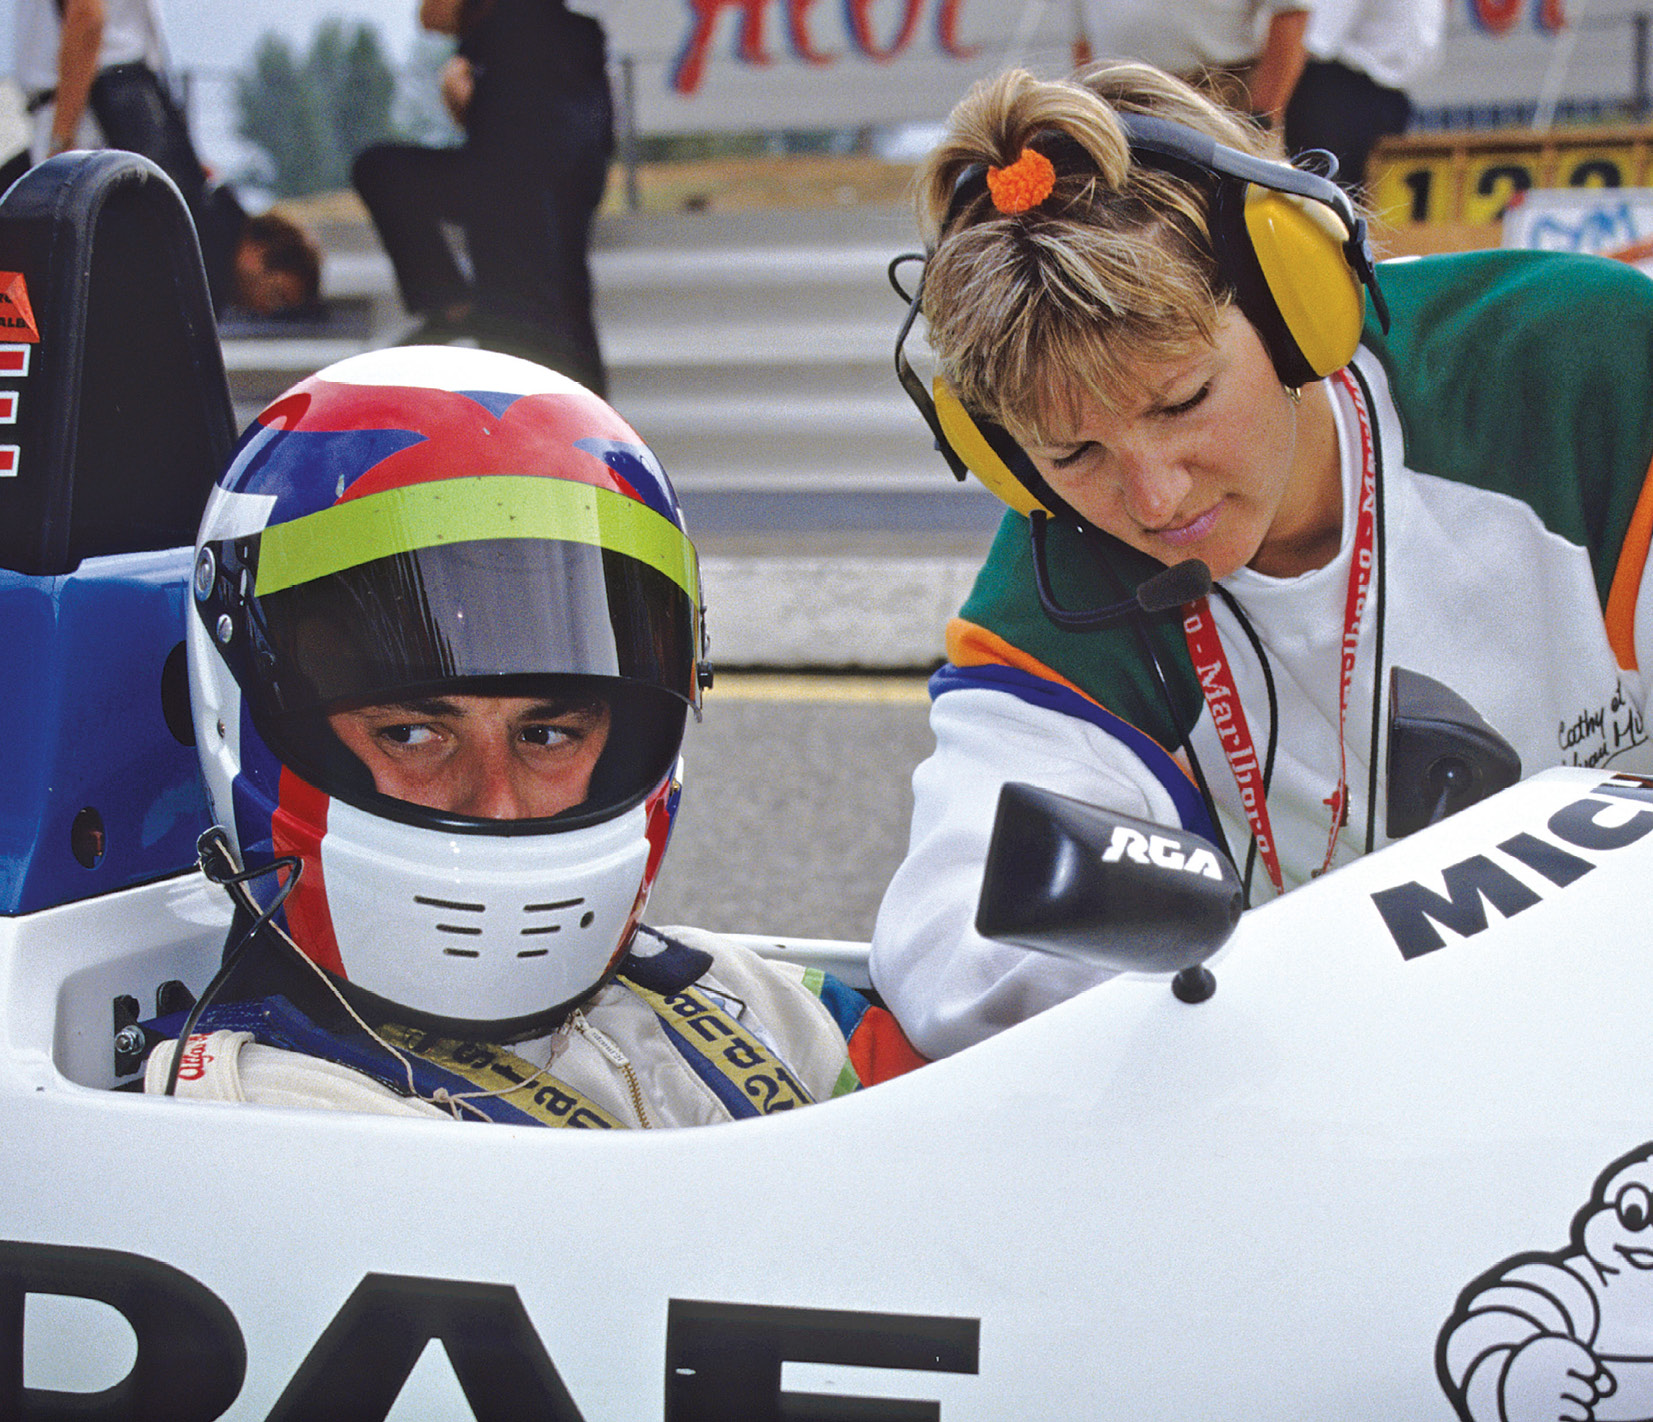 Yvan Muller only did a single F3000 season, in 1993, with Cathy on hand to support him